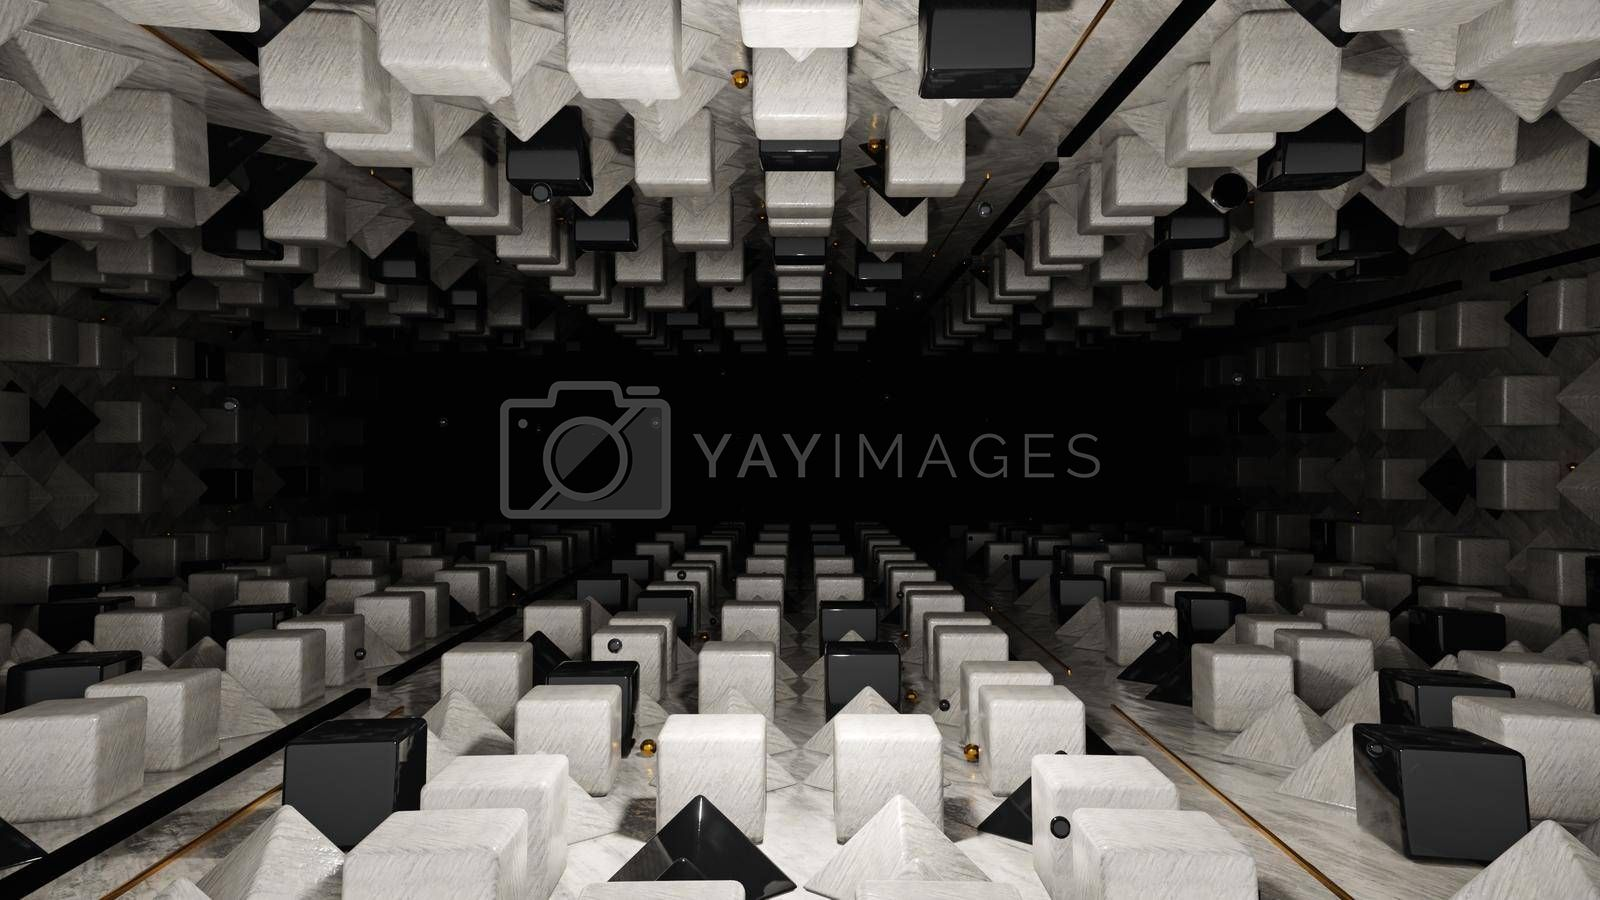 3D illustration Background for advertising and wallpaper in geometry style and abstract scene. 3D rendering in decorative concept